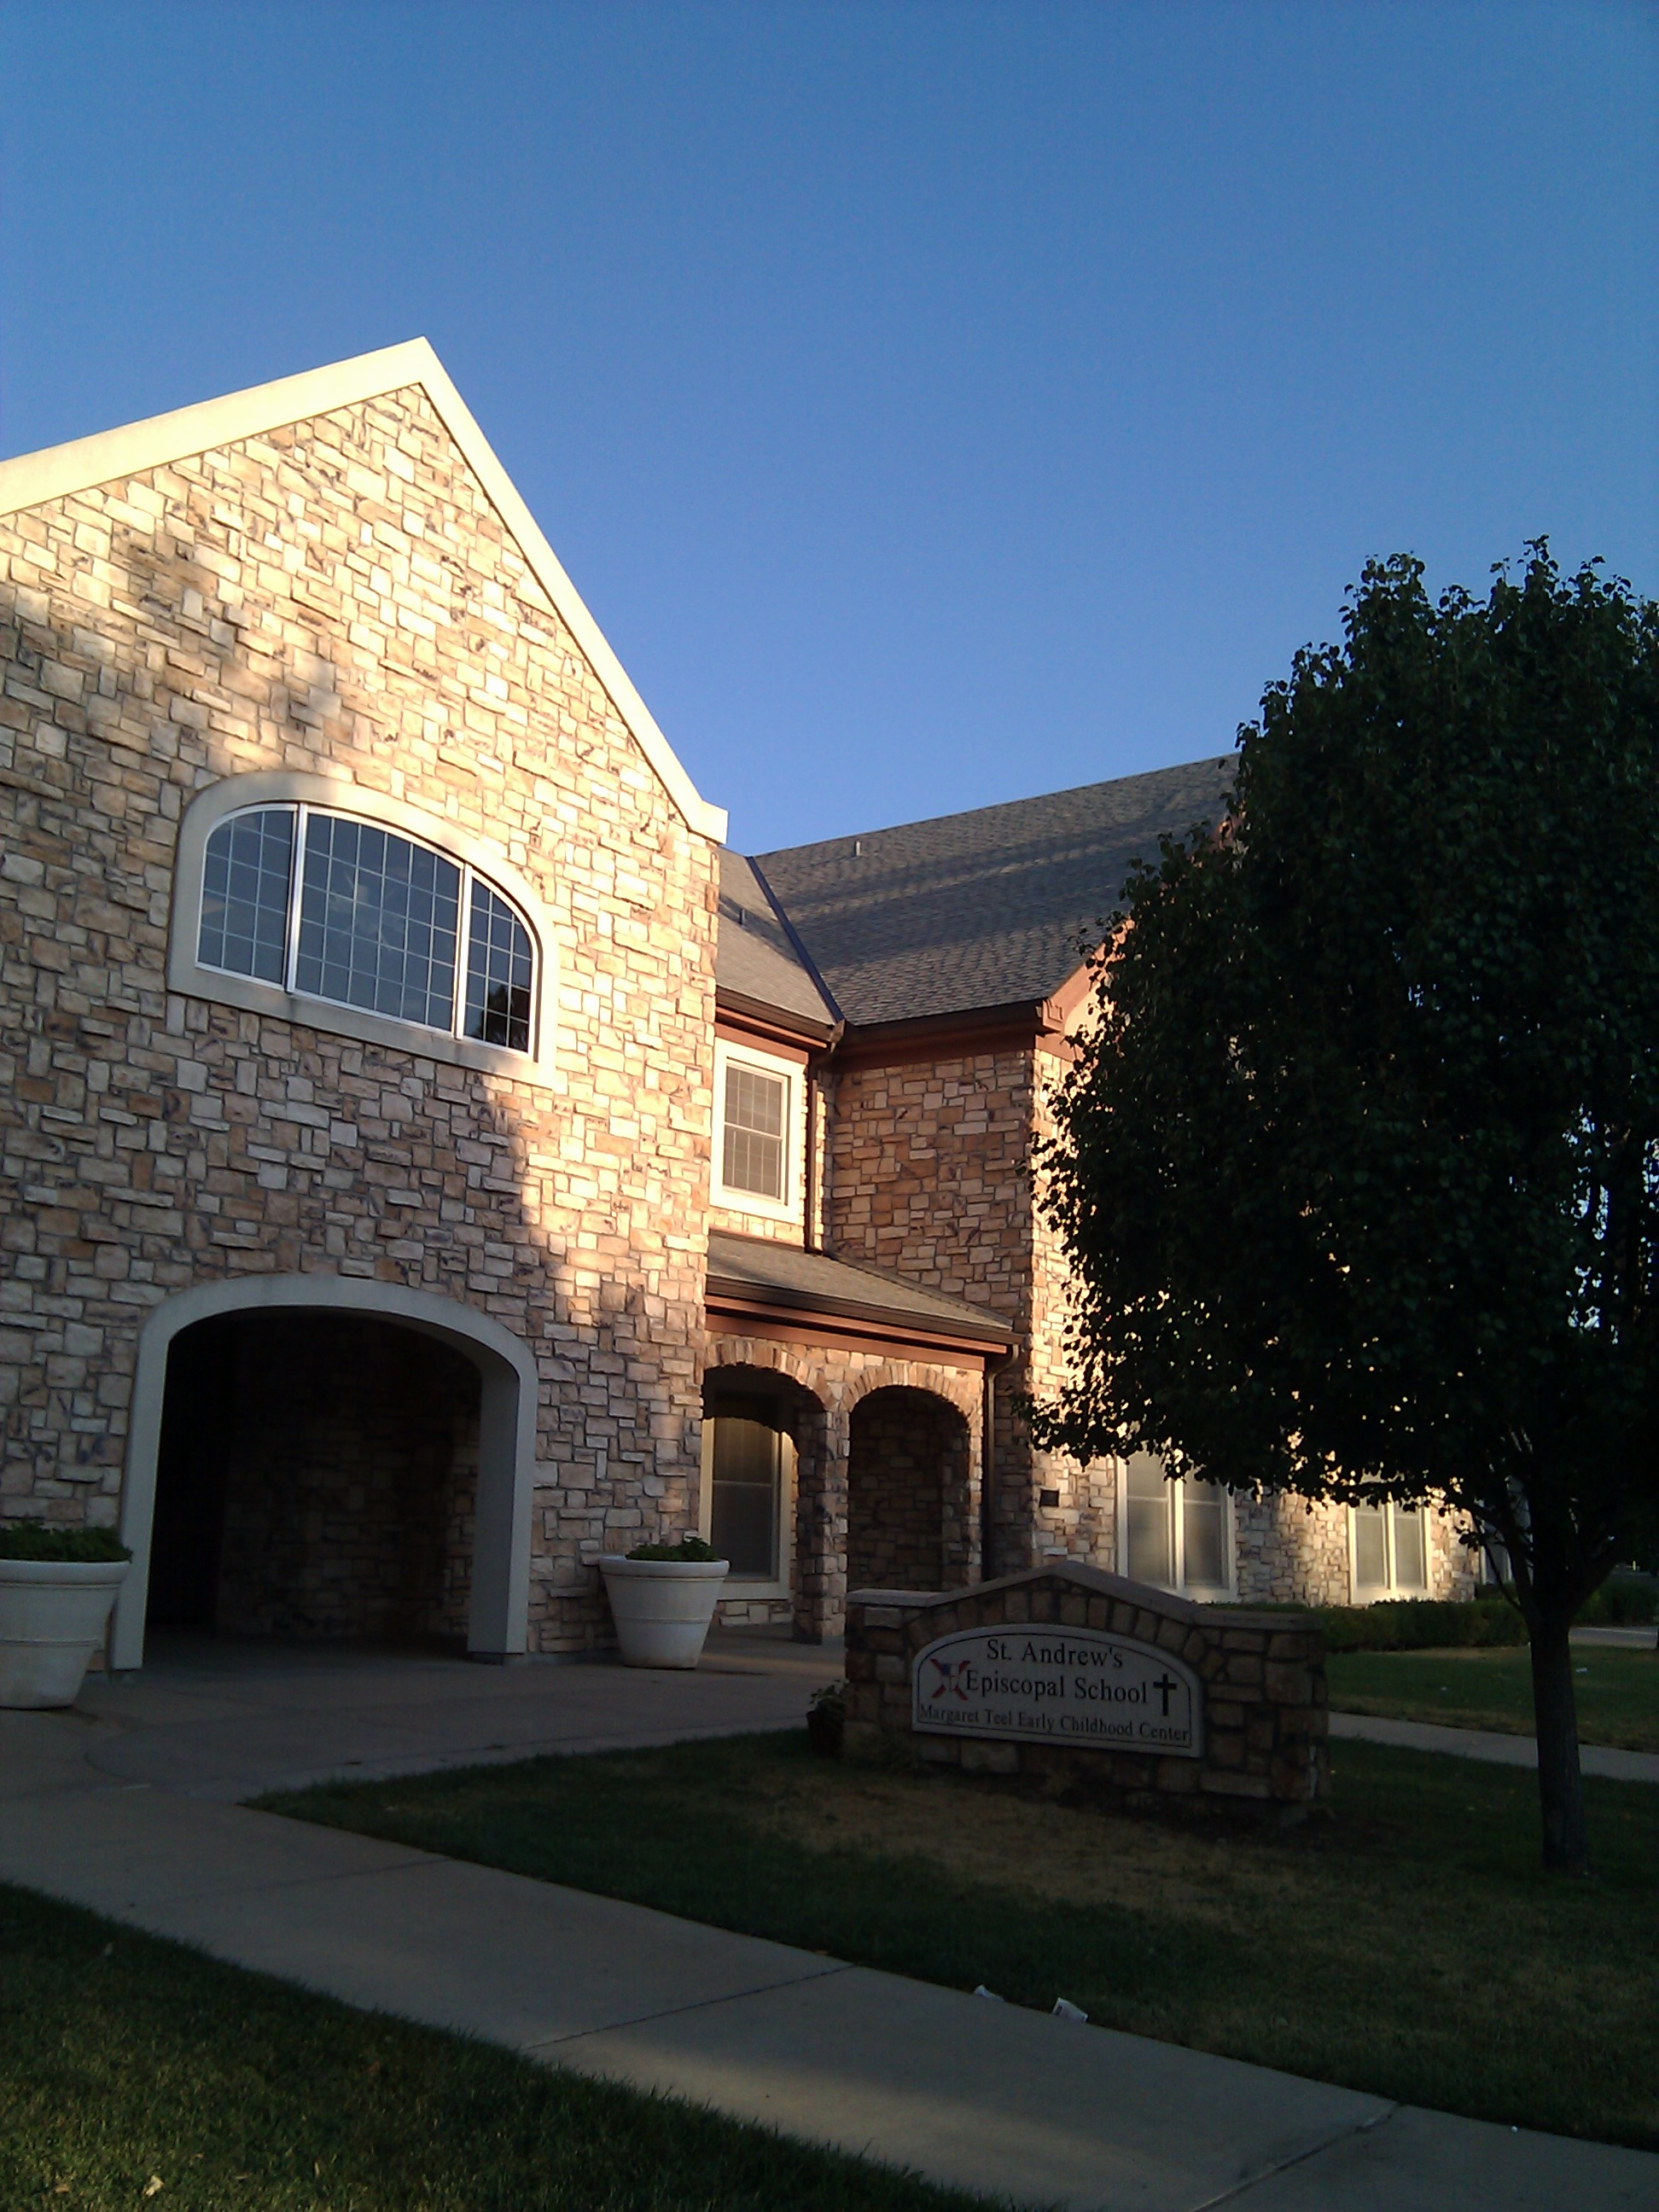 St Andrew S Episcopal School Amarillo Texas Wikipedia